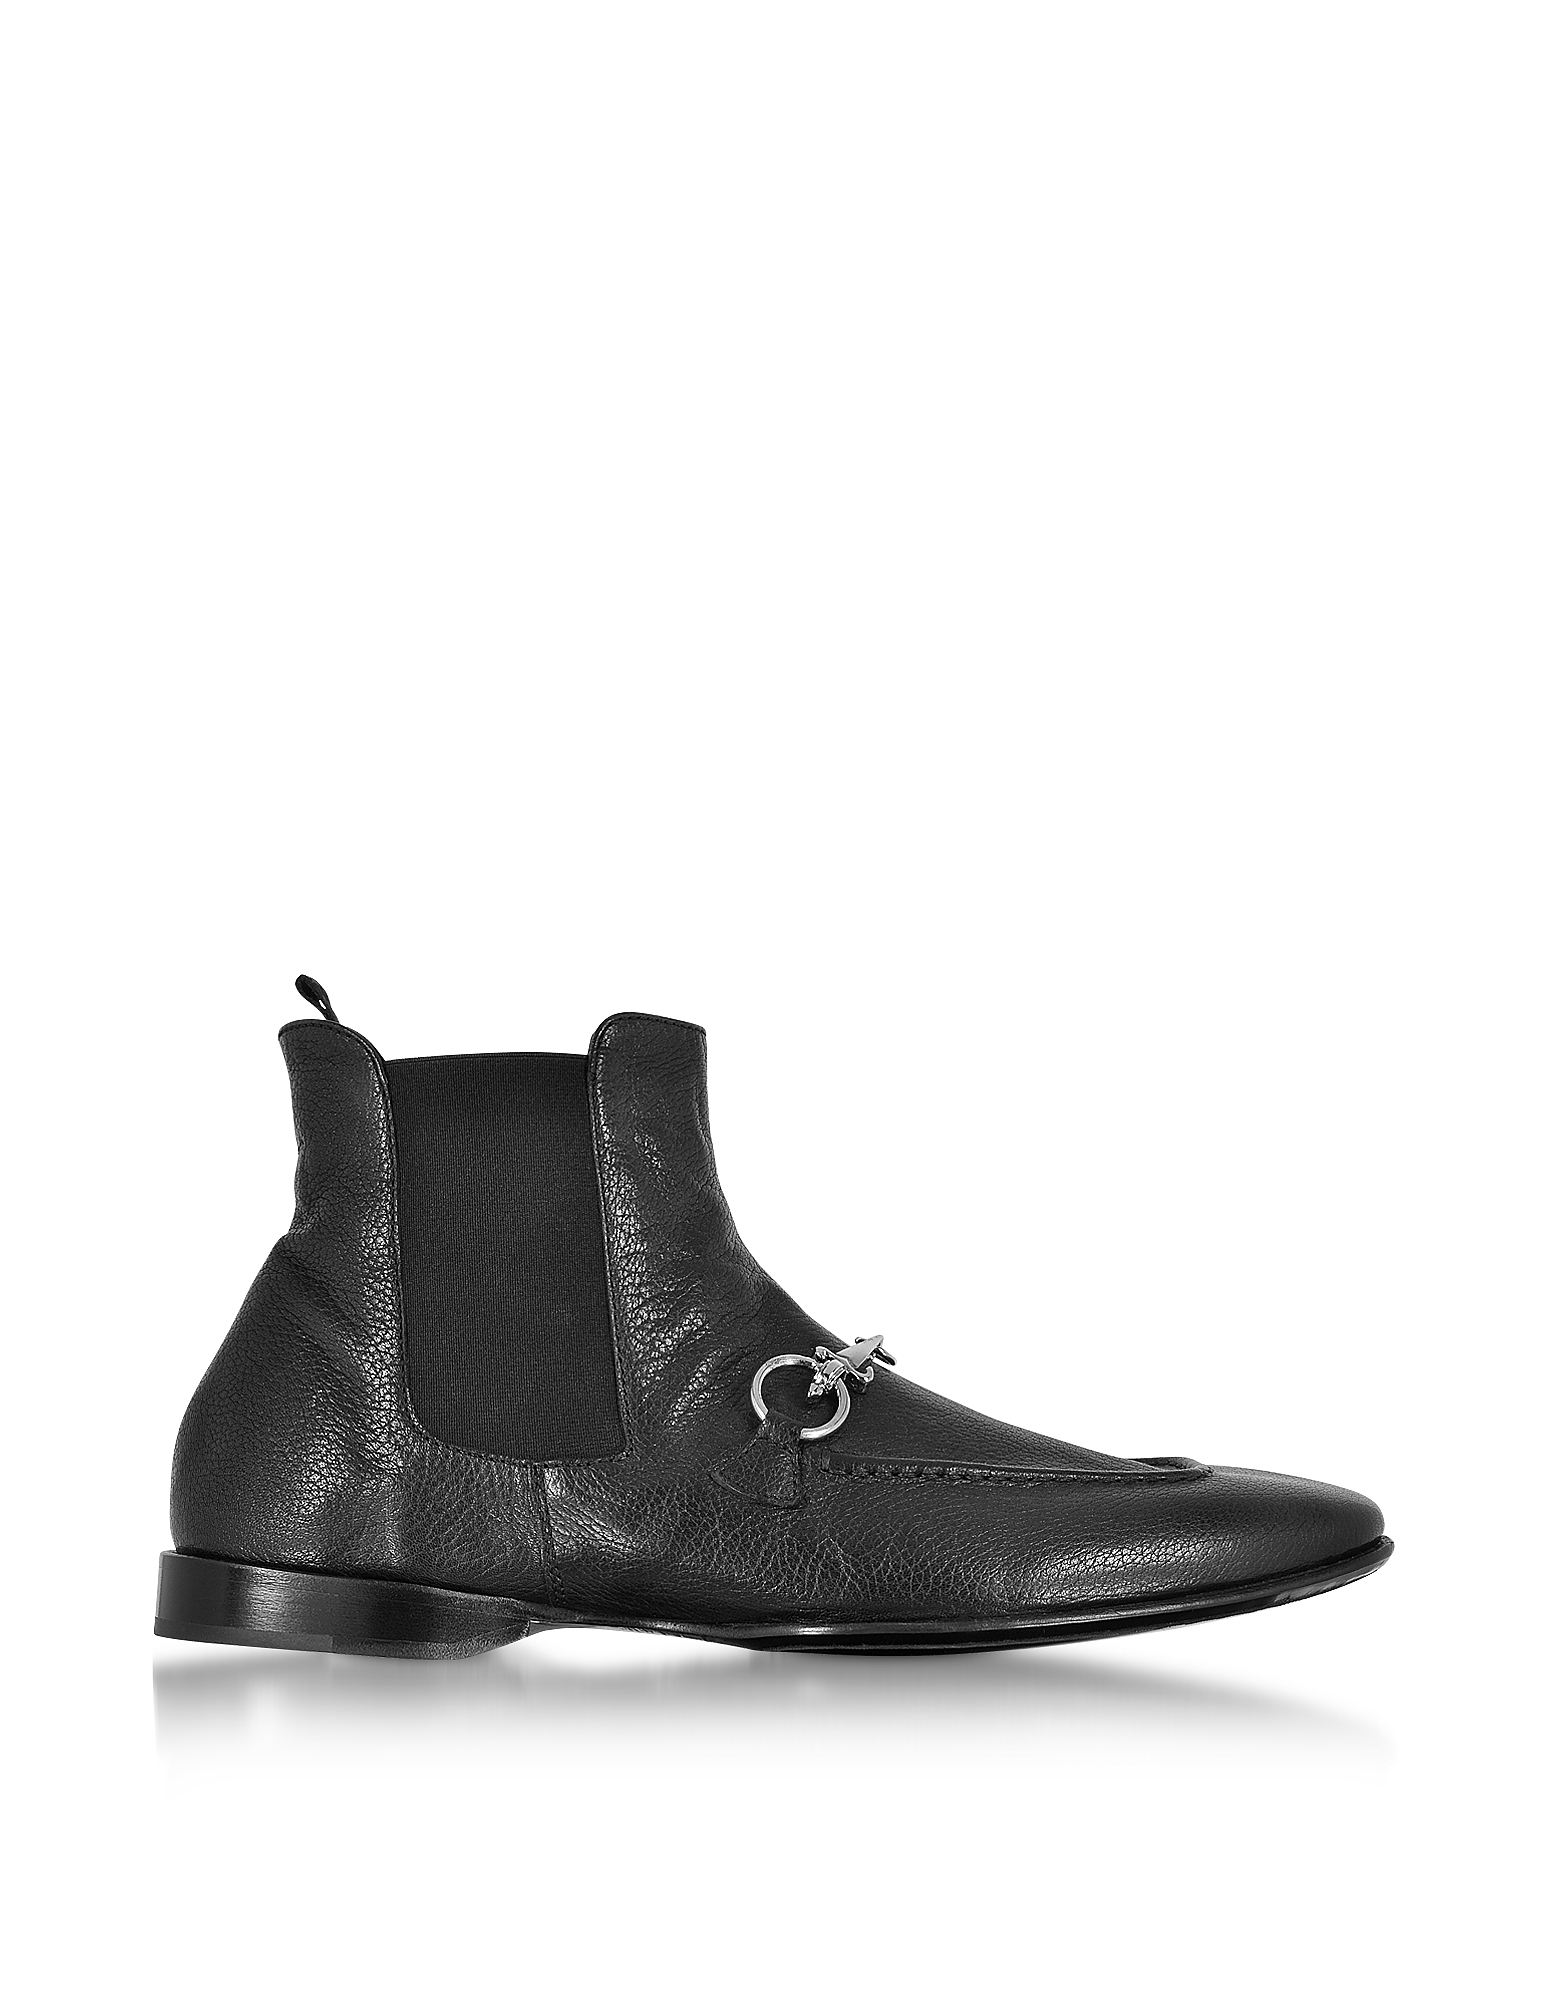 Cesare Paciotti Shoes, Black Buffalo Leather Boots